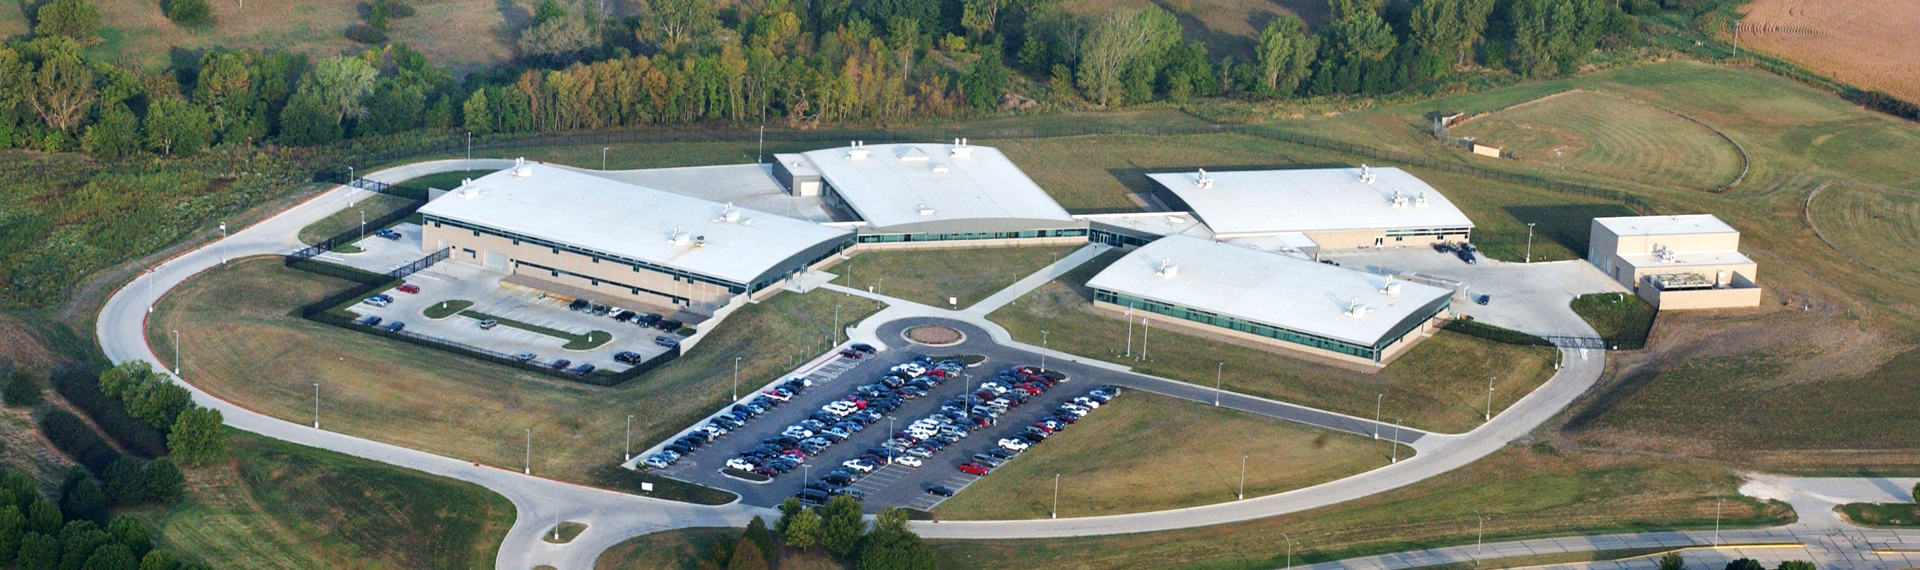 Aerial view of laboratory facilities